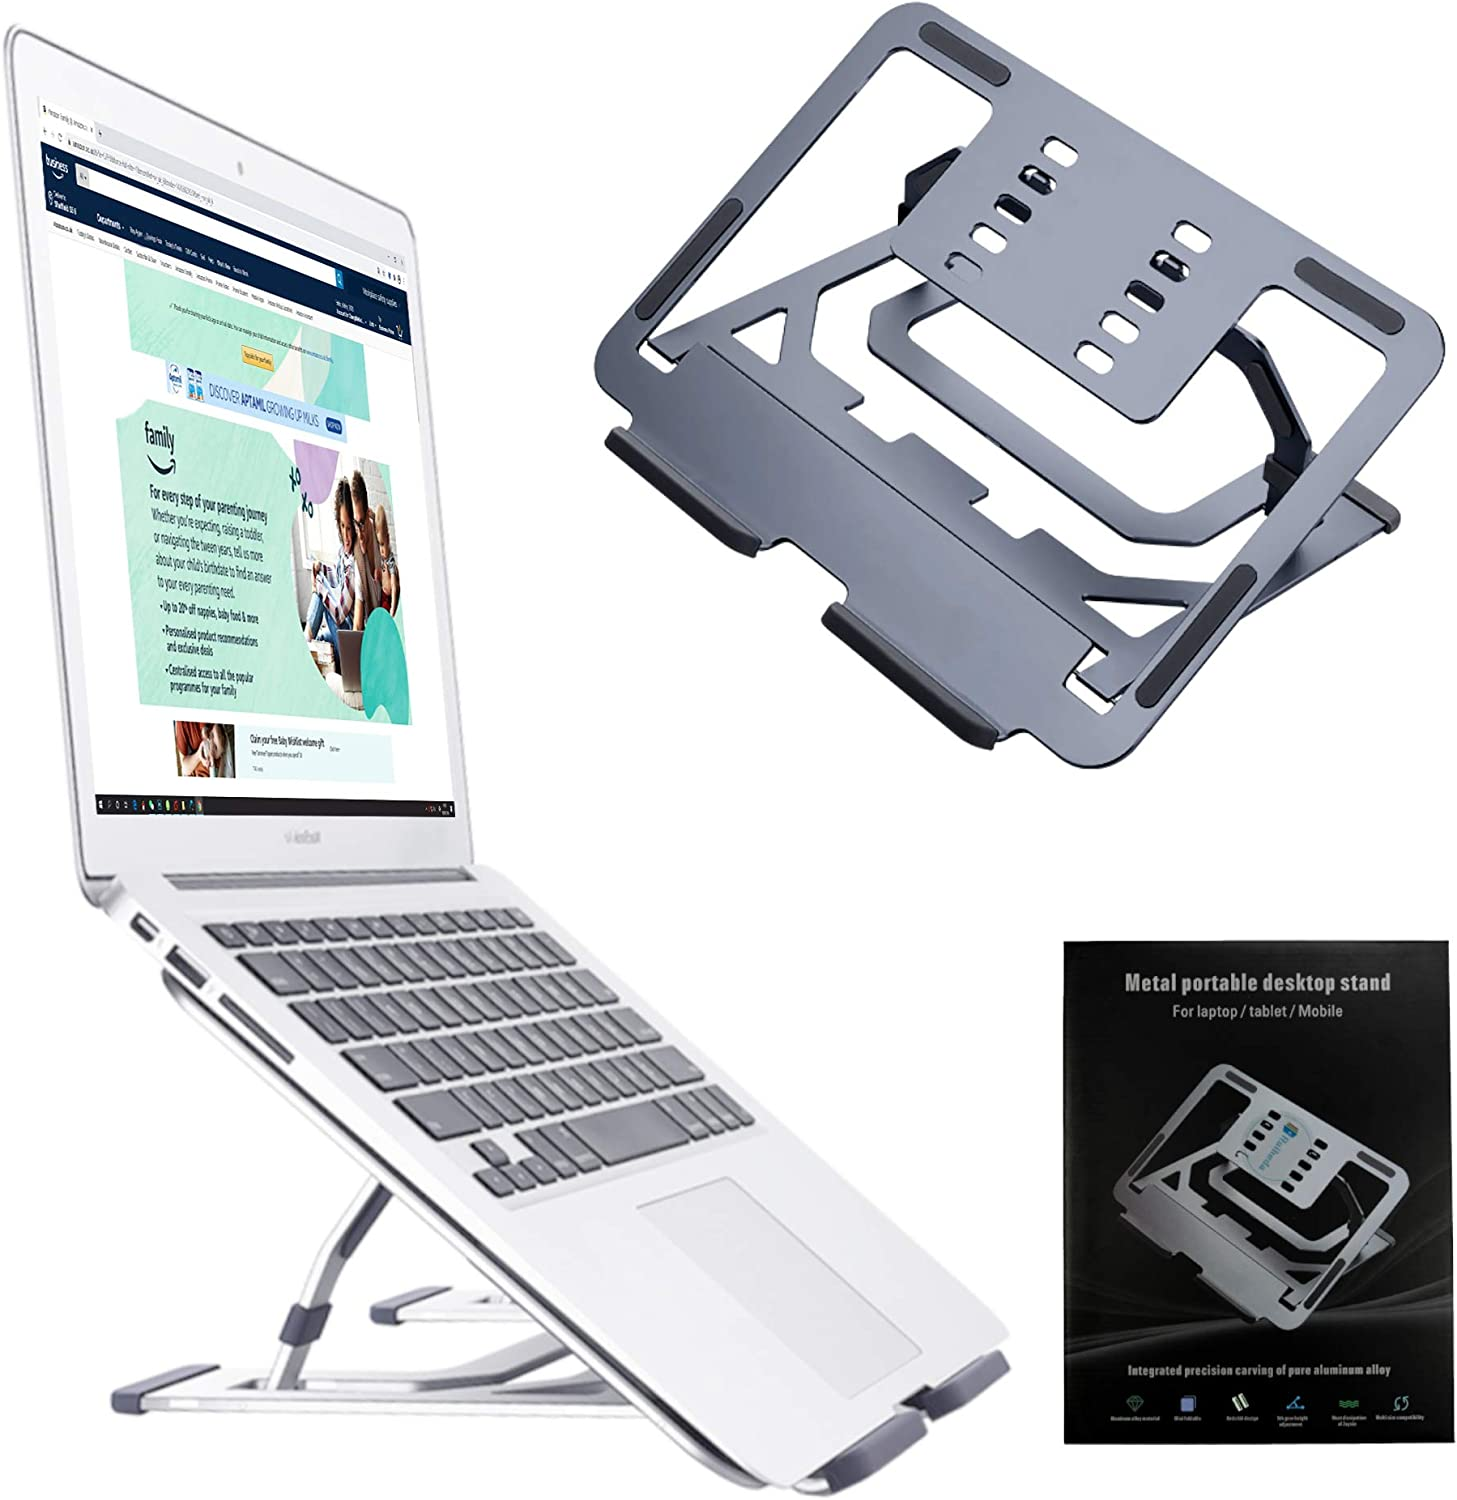 Ruiheda Adjustable Laptop Stand, Aluminum Tray Laptop Holder for Desk WAS £36.99 NOW £29.59 w/code 9X3ATM3P @ Amazon